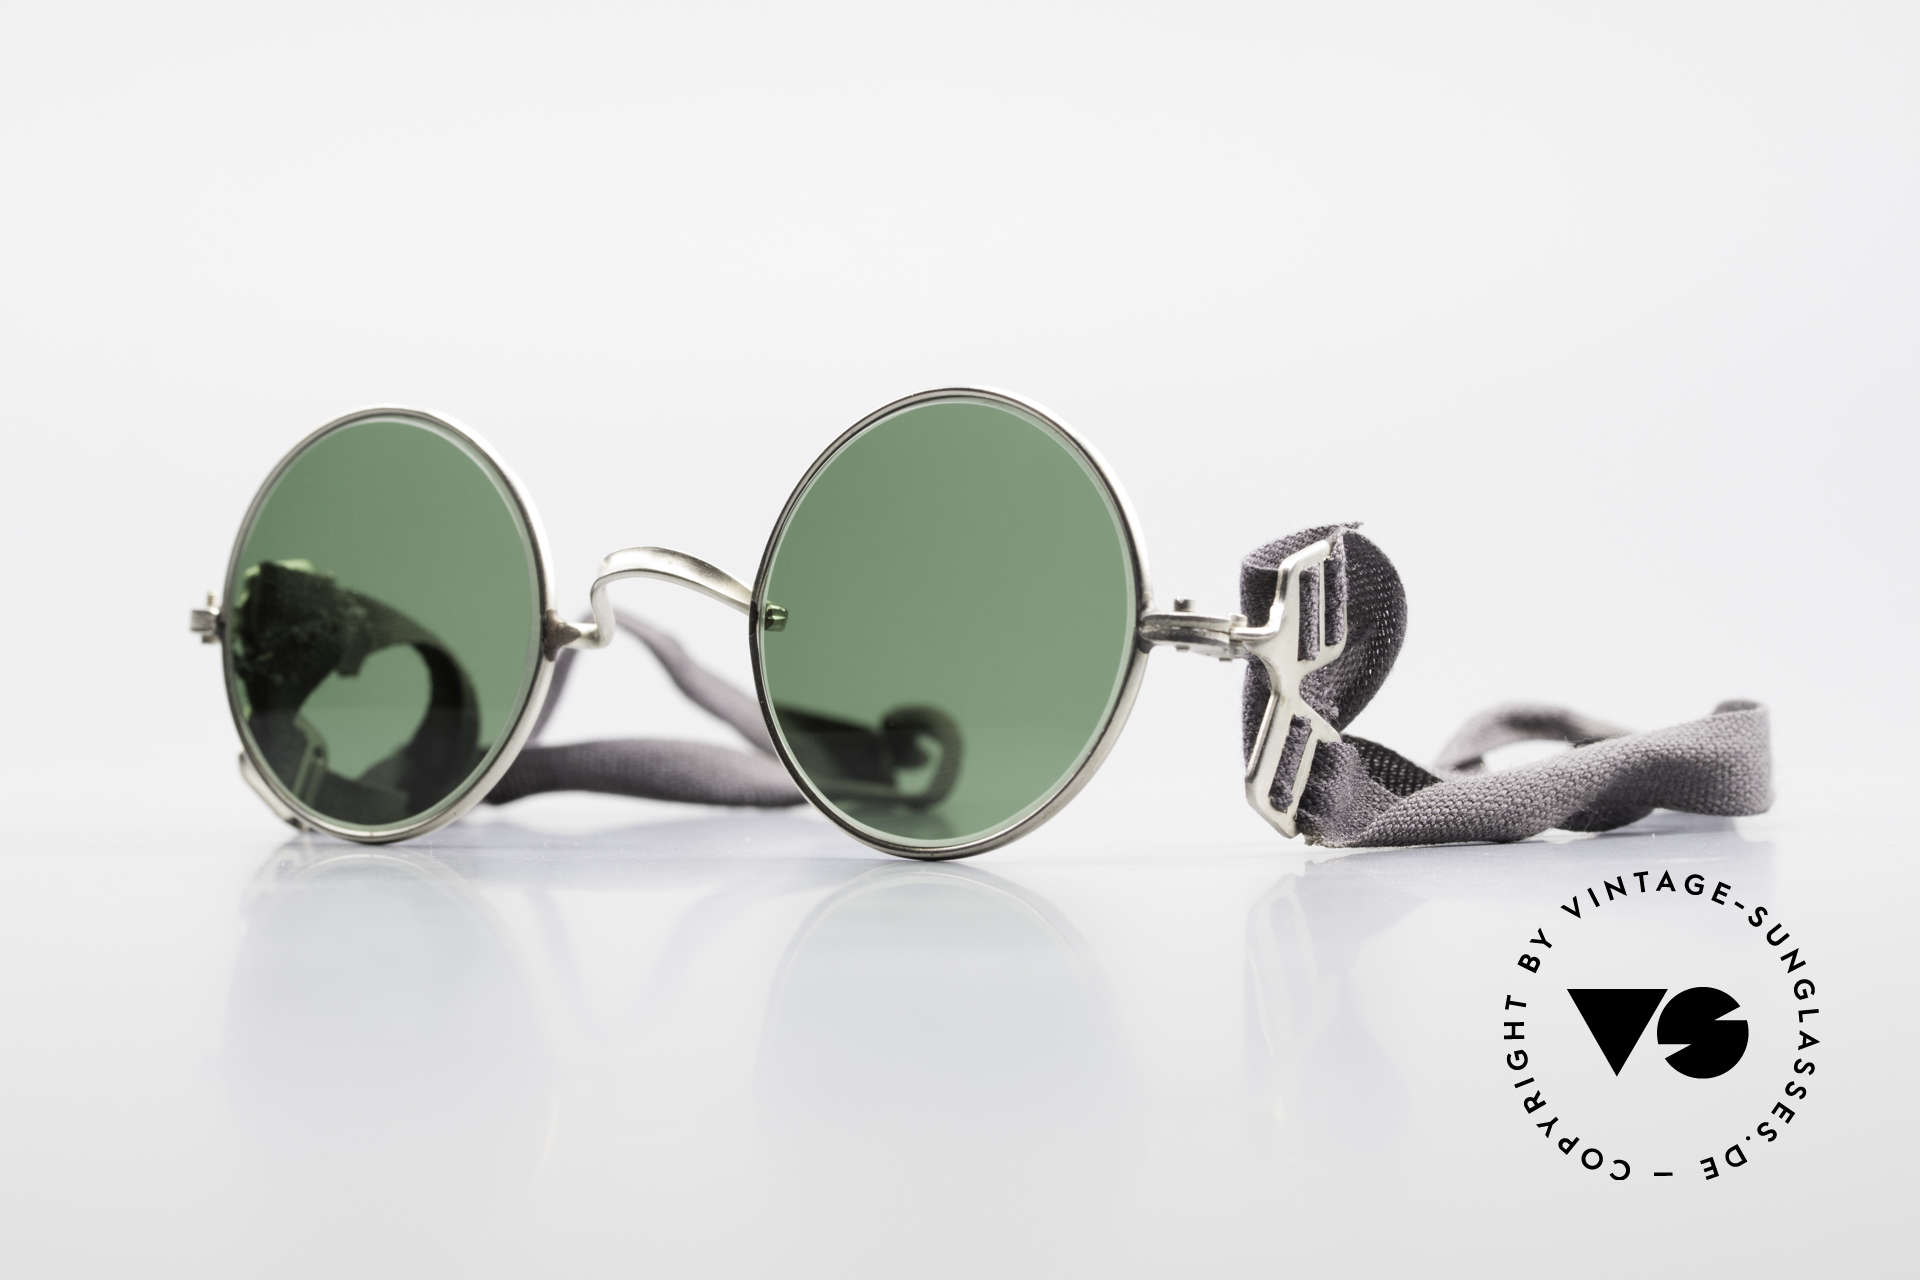 Militärbrille Round Old Army Military Sunglasses, old, antique army sunglasses from the 1960's, Made for Men